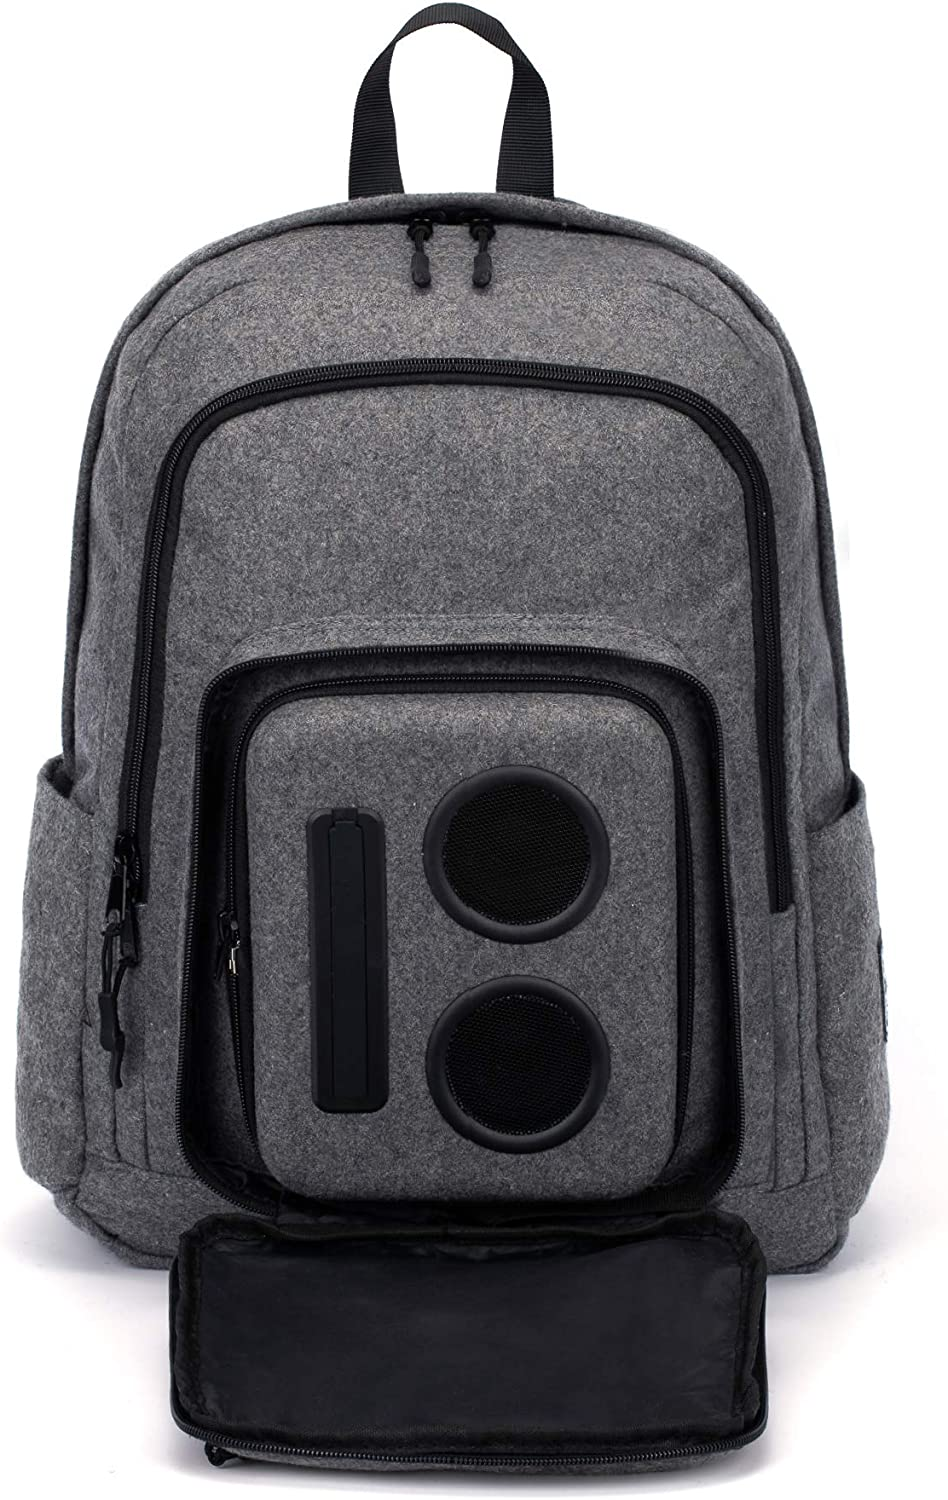 Bluetooth Speaker Backpack with 15 Watt Speakers & Subwoofer for PartiesFestivals BeachSchool. Rechargeable, Works with iPhone & Android (Gray,